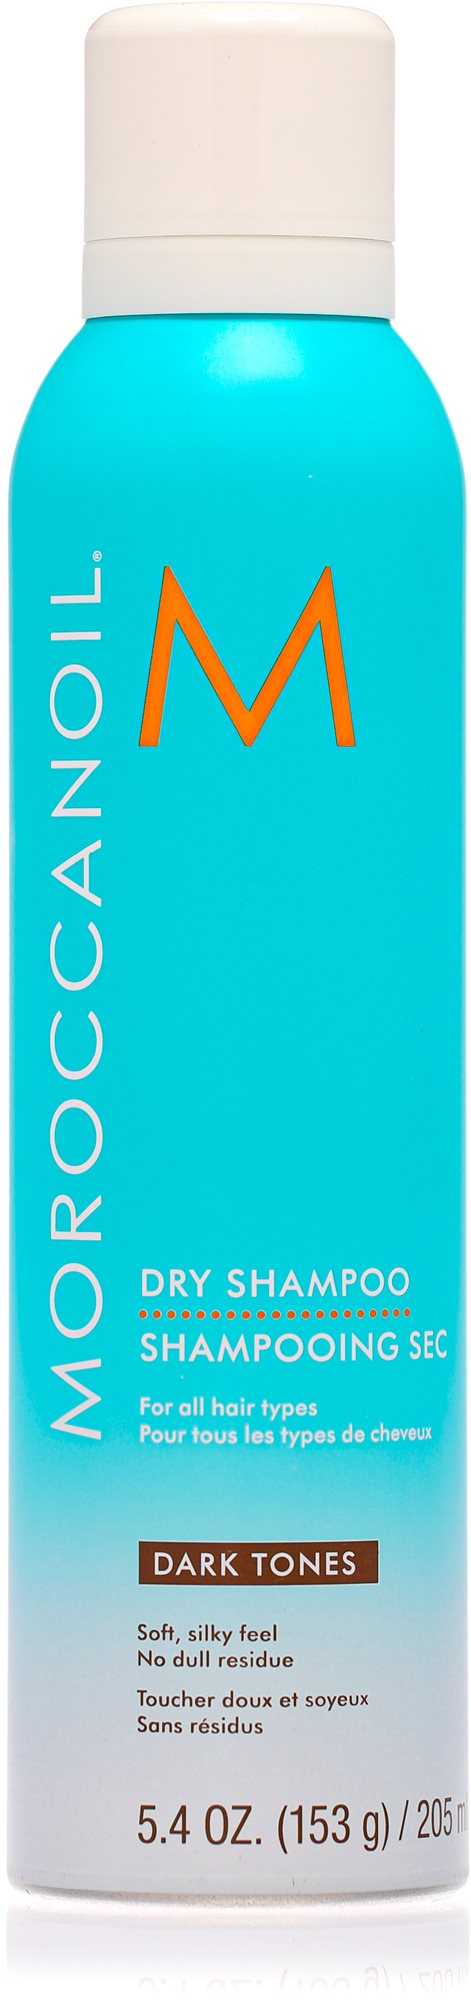 MOROCCANOIL Dry for Dark Tones 205 ml